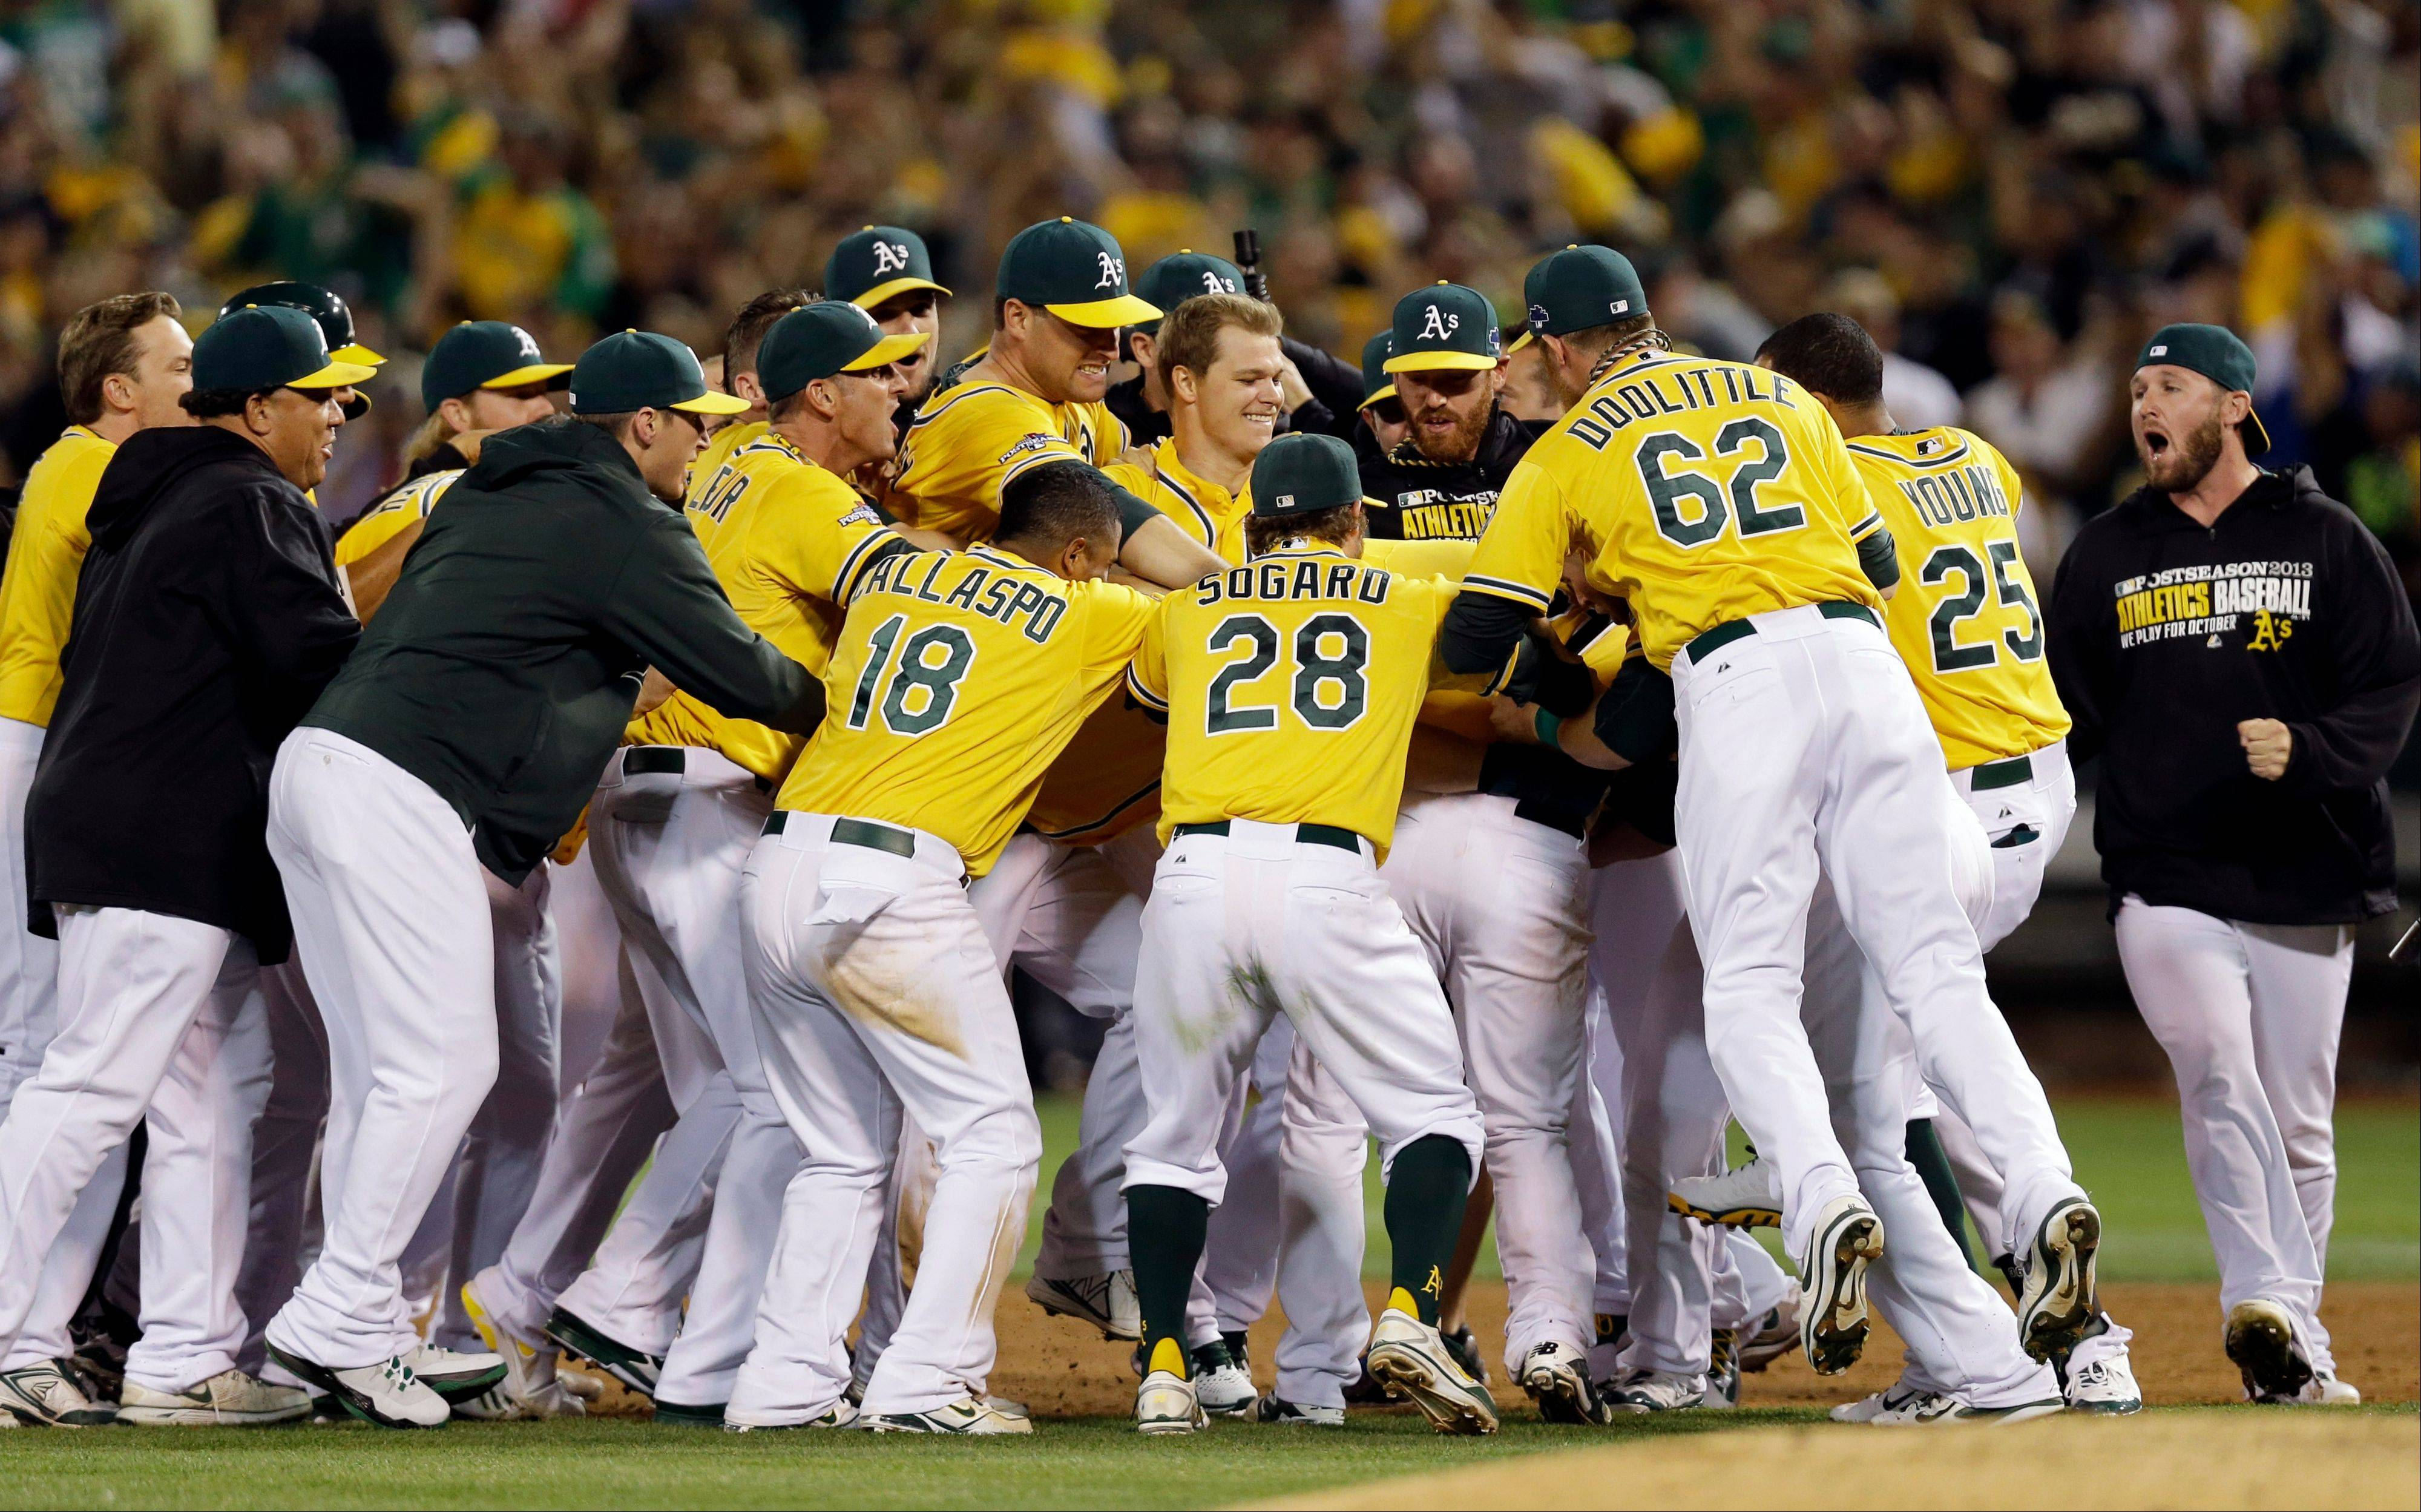 The Oakland Athletics celebrate their 1-0 win over the Detroit Tigers in Game 2 of an American League baseball Division Series Saturday night in Oakland, Calif.